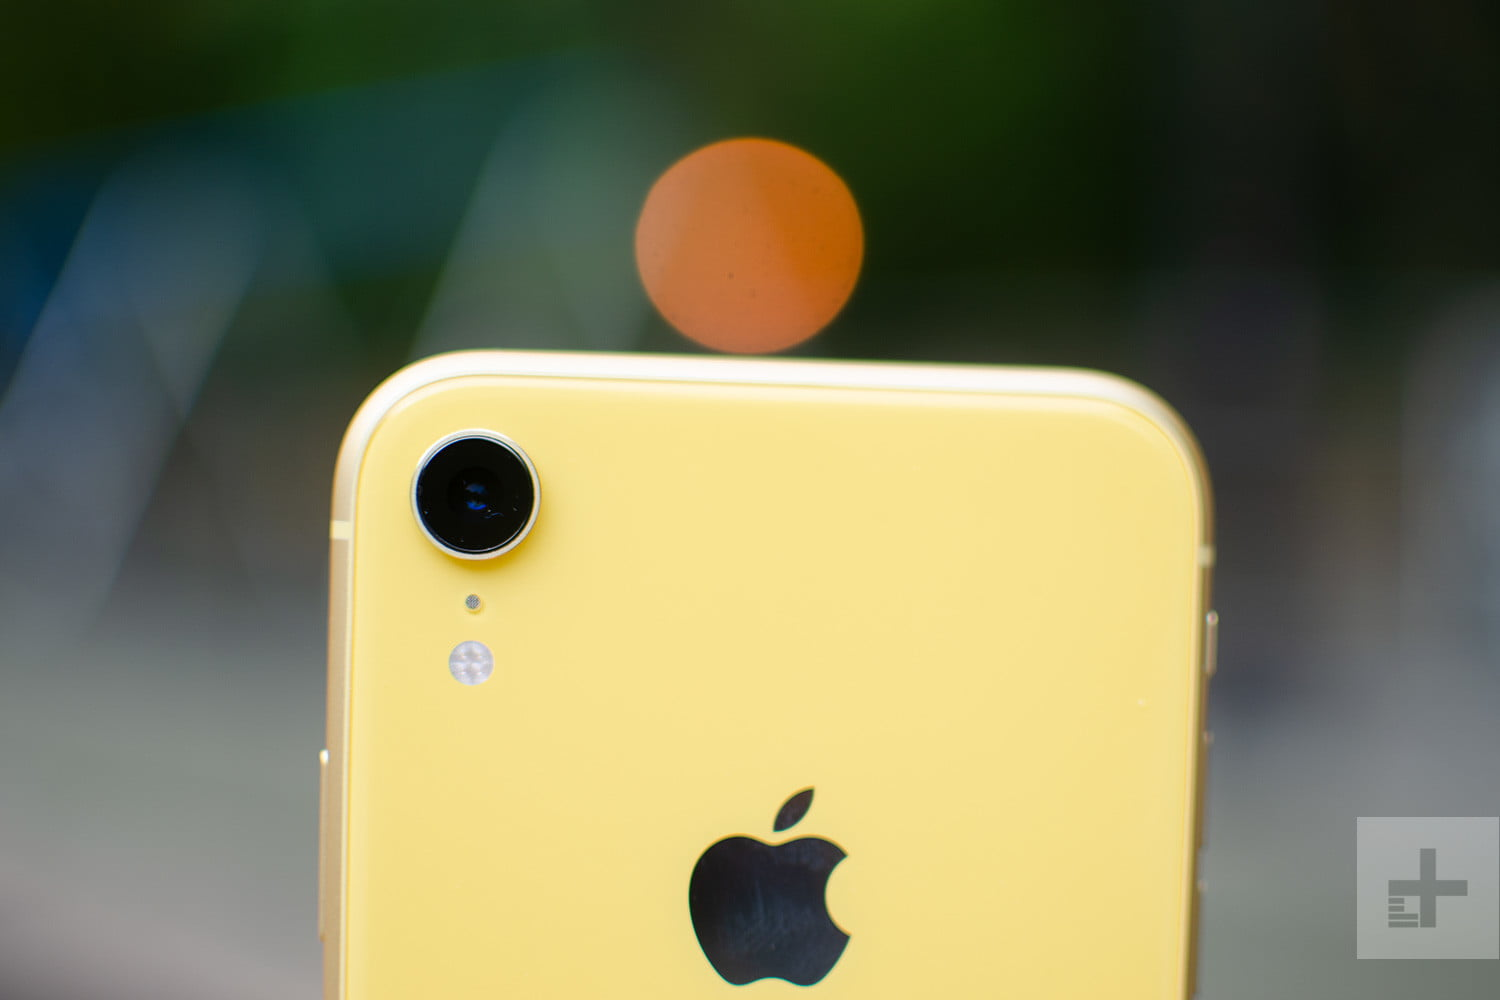 cf7e466199e On the front, the iPhone XR features the same TrueDepth camera system as  the iPhone XS and iPhone XS Max, meaning you get the same Face ID features  as other ...